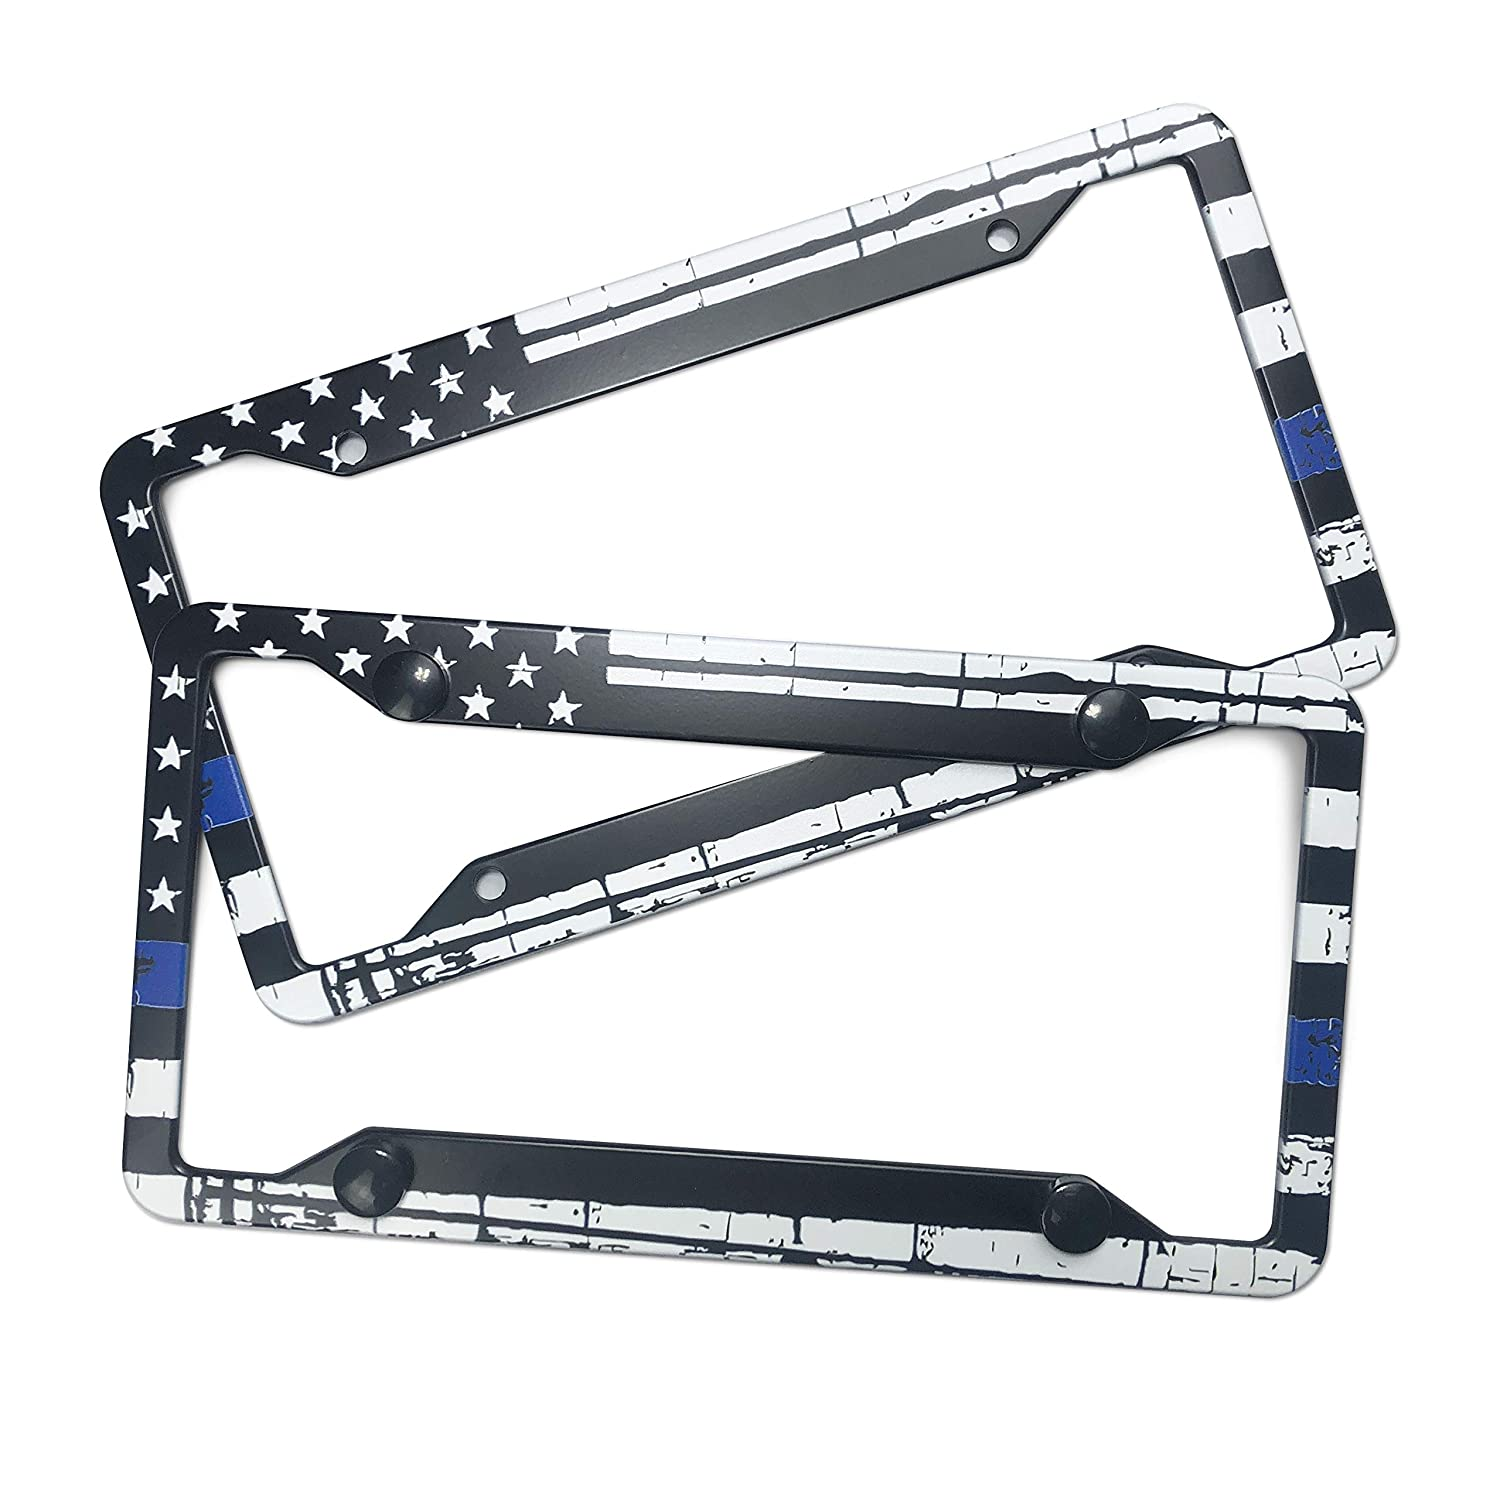 EXMENI Thin Blue Line American Flag License Plate Frames Set of 2 Aluminum Black on White Composite Tie Flag-Themed License Plate Frame Novelty Auto Car Tag Vanity Gift Support Law Enforcement